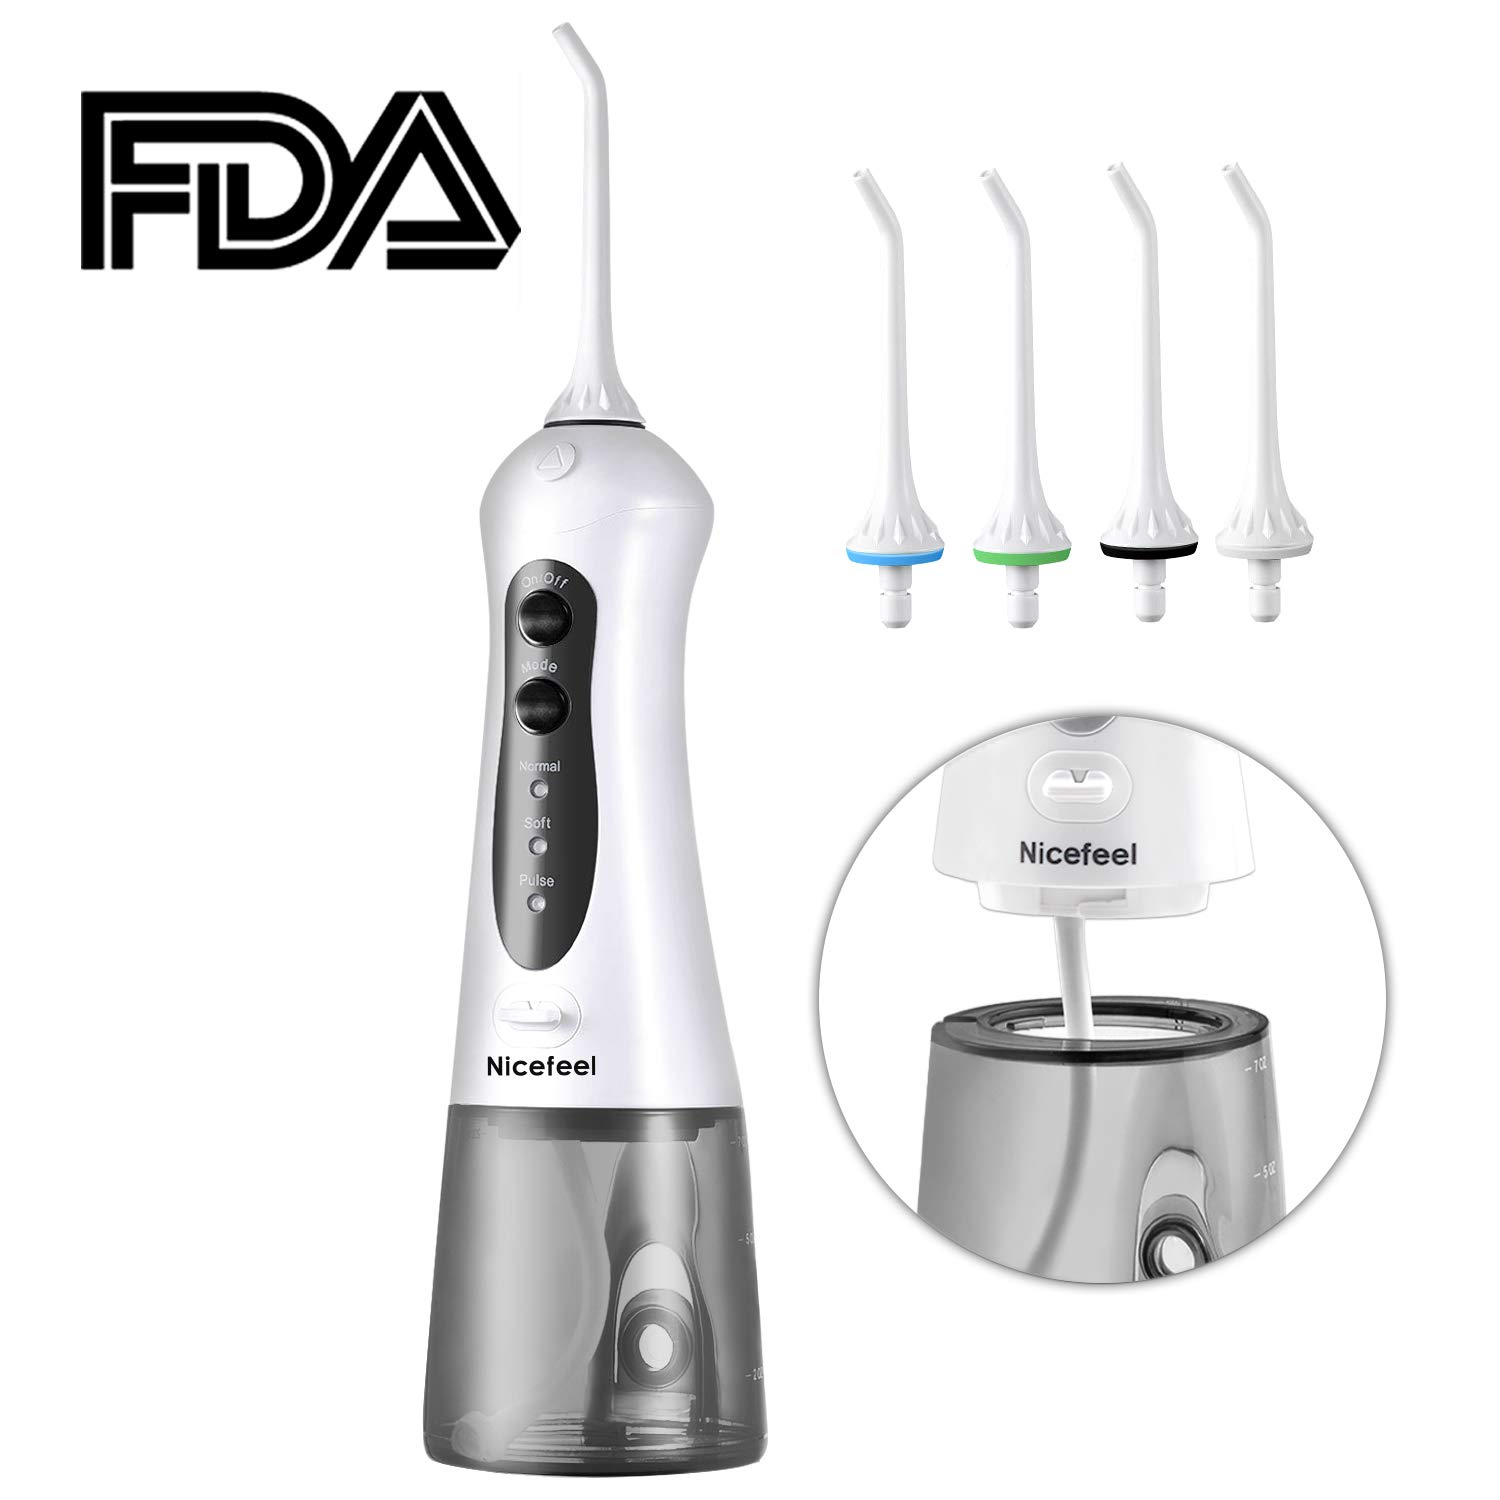 Cordless Water Flosser Oral Irrigator, Nicefeel IPX7 Waterproof 3-Mode USB Rechargable Professinal Portable Water Dental Flosser with 4 Jet Tips for Braces and Teeth Whitening of Family